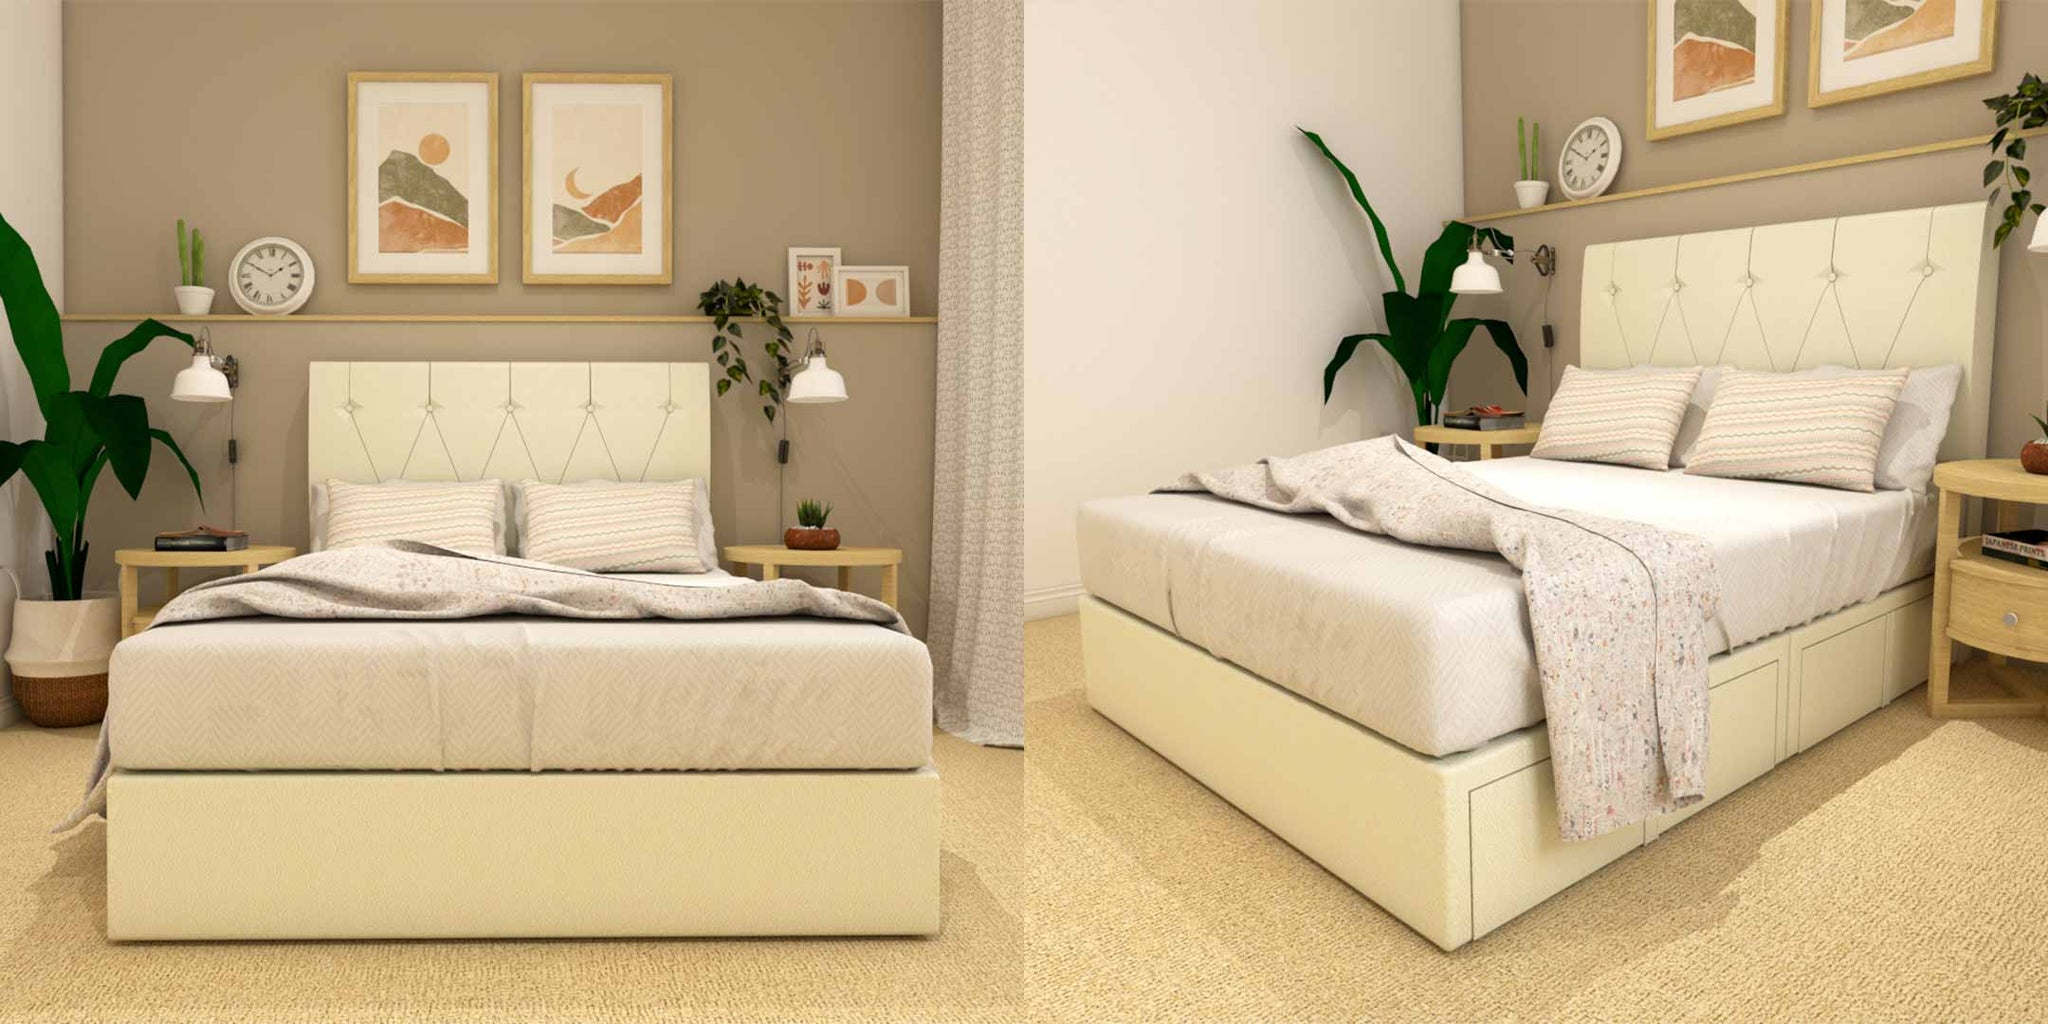 More Stability for your Mattress with Harrier Faux Leather Drawer Bed Frame